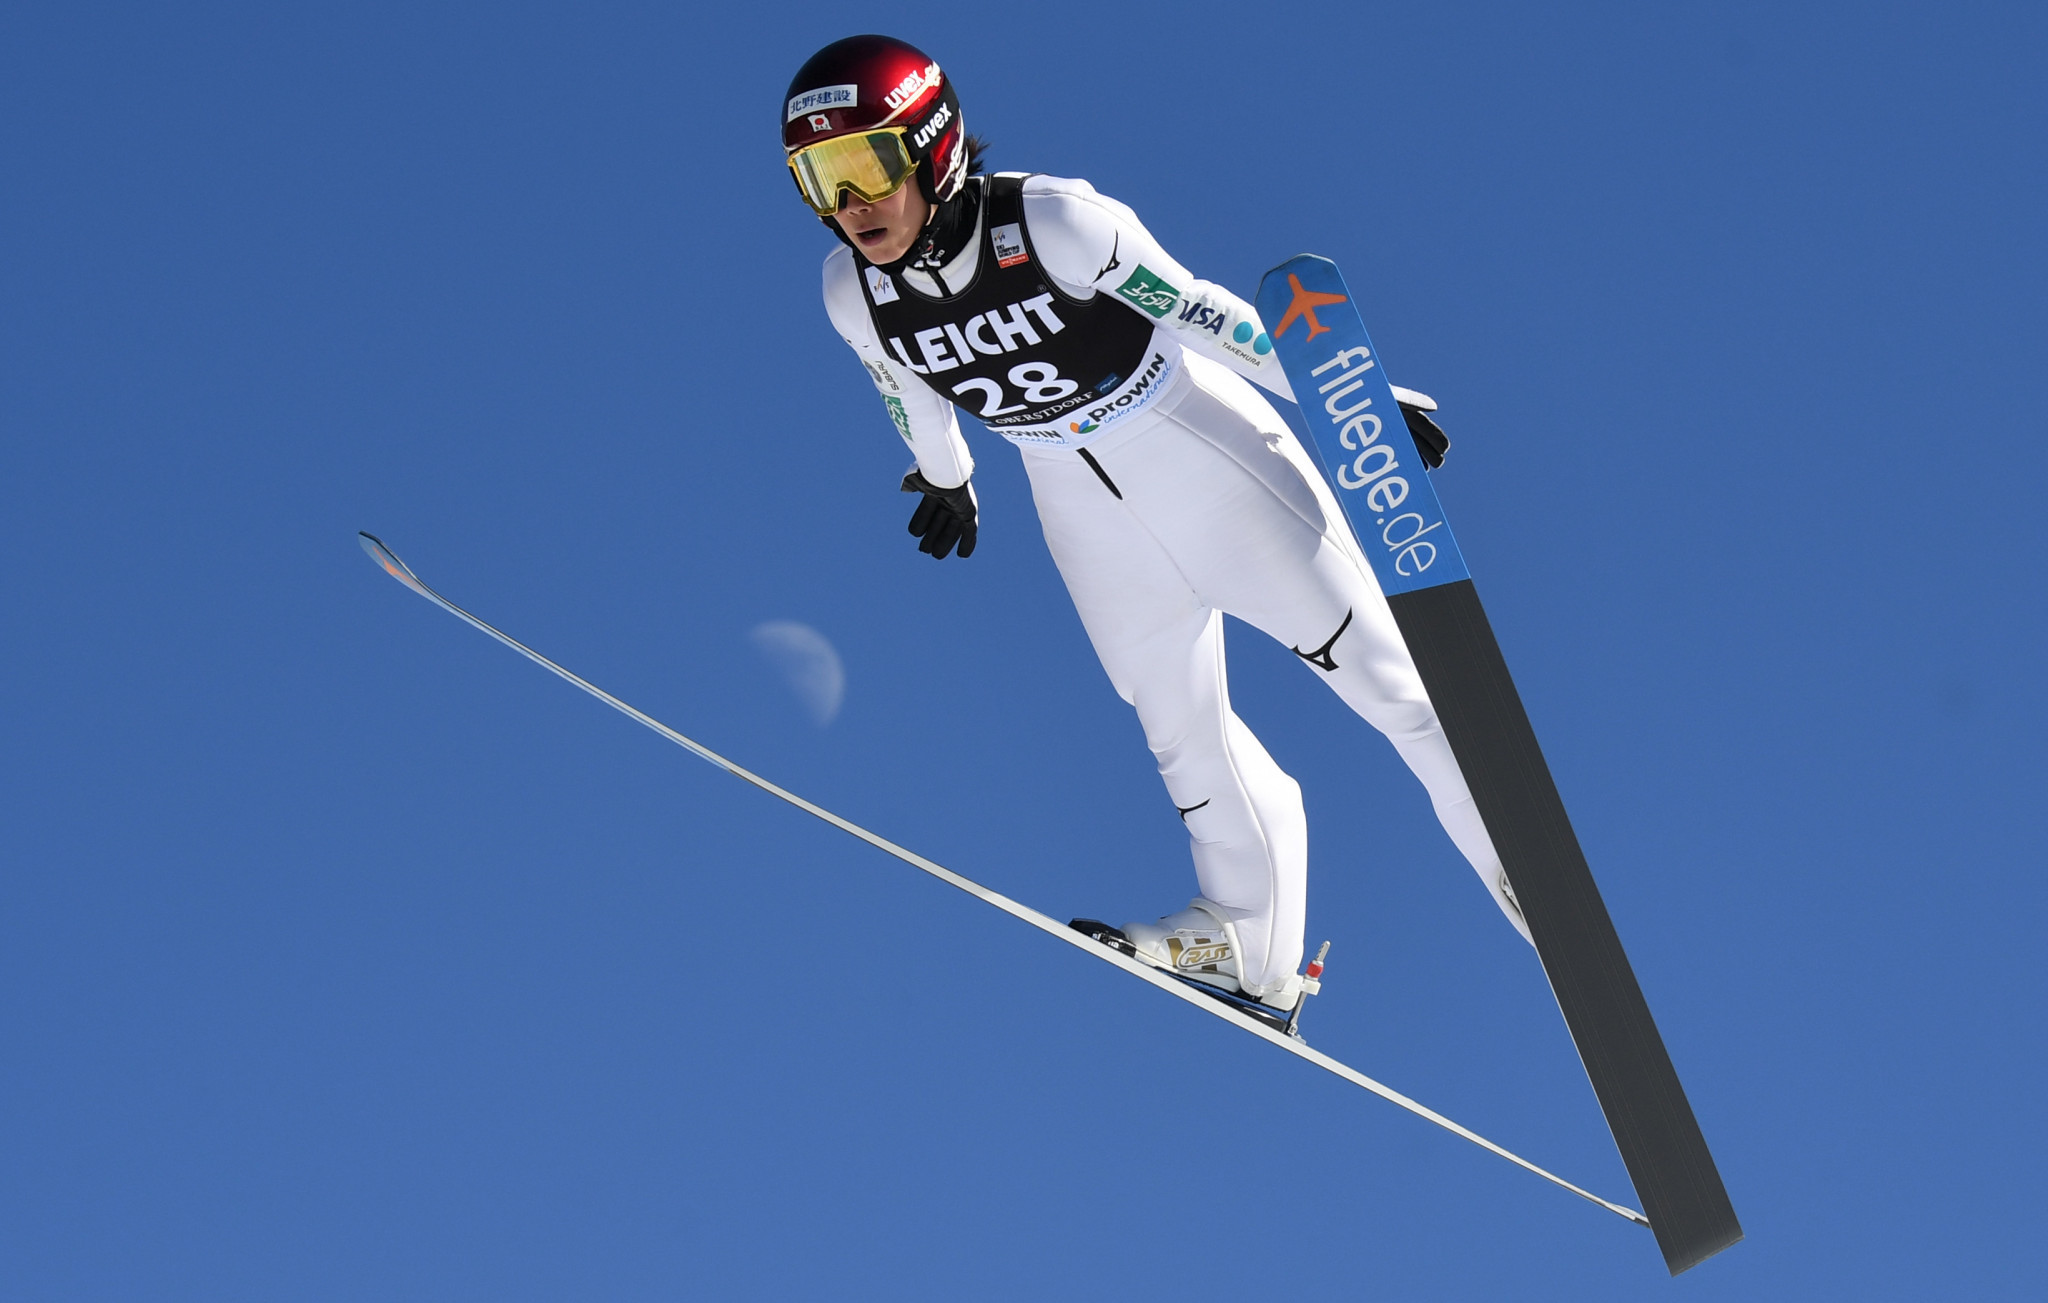 FIS confirm two new competitions added to Women's Ski Jumping World Cup